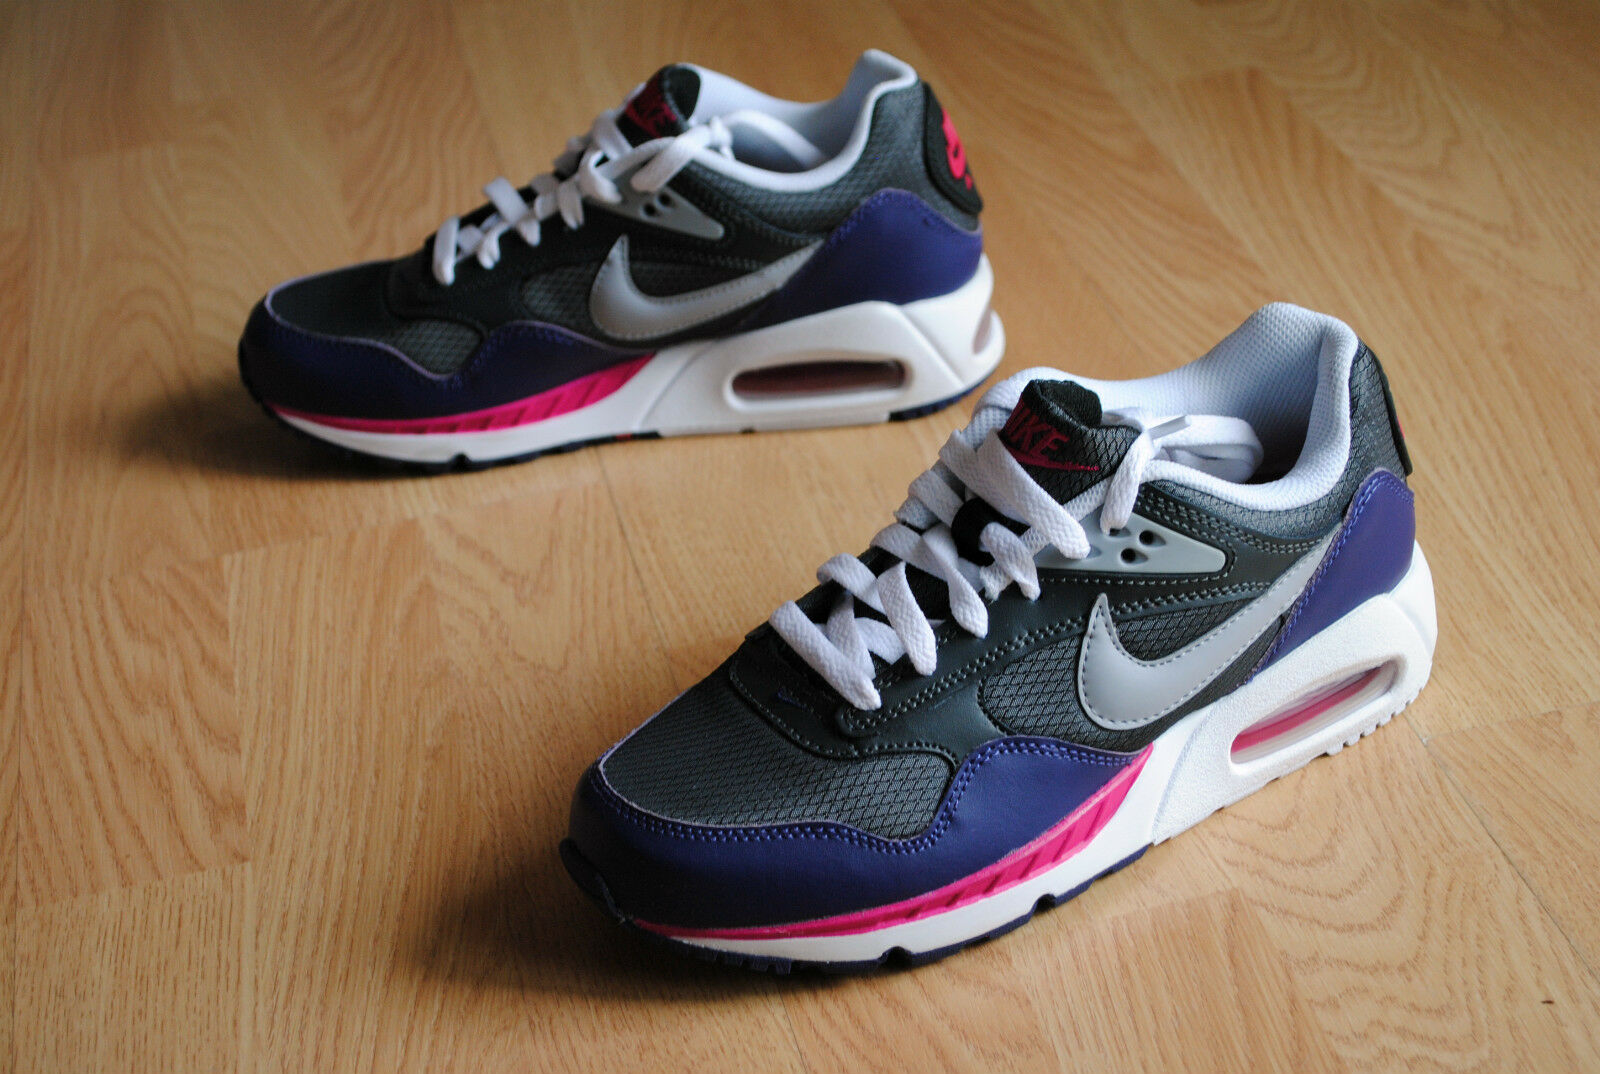 Wmns Nike Air Max correlate 38 Command Classic free 1 skyline 90 BW Light